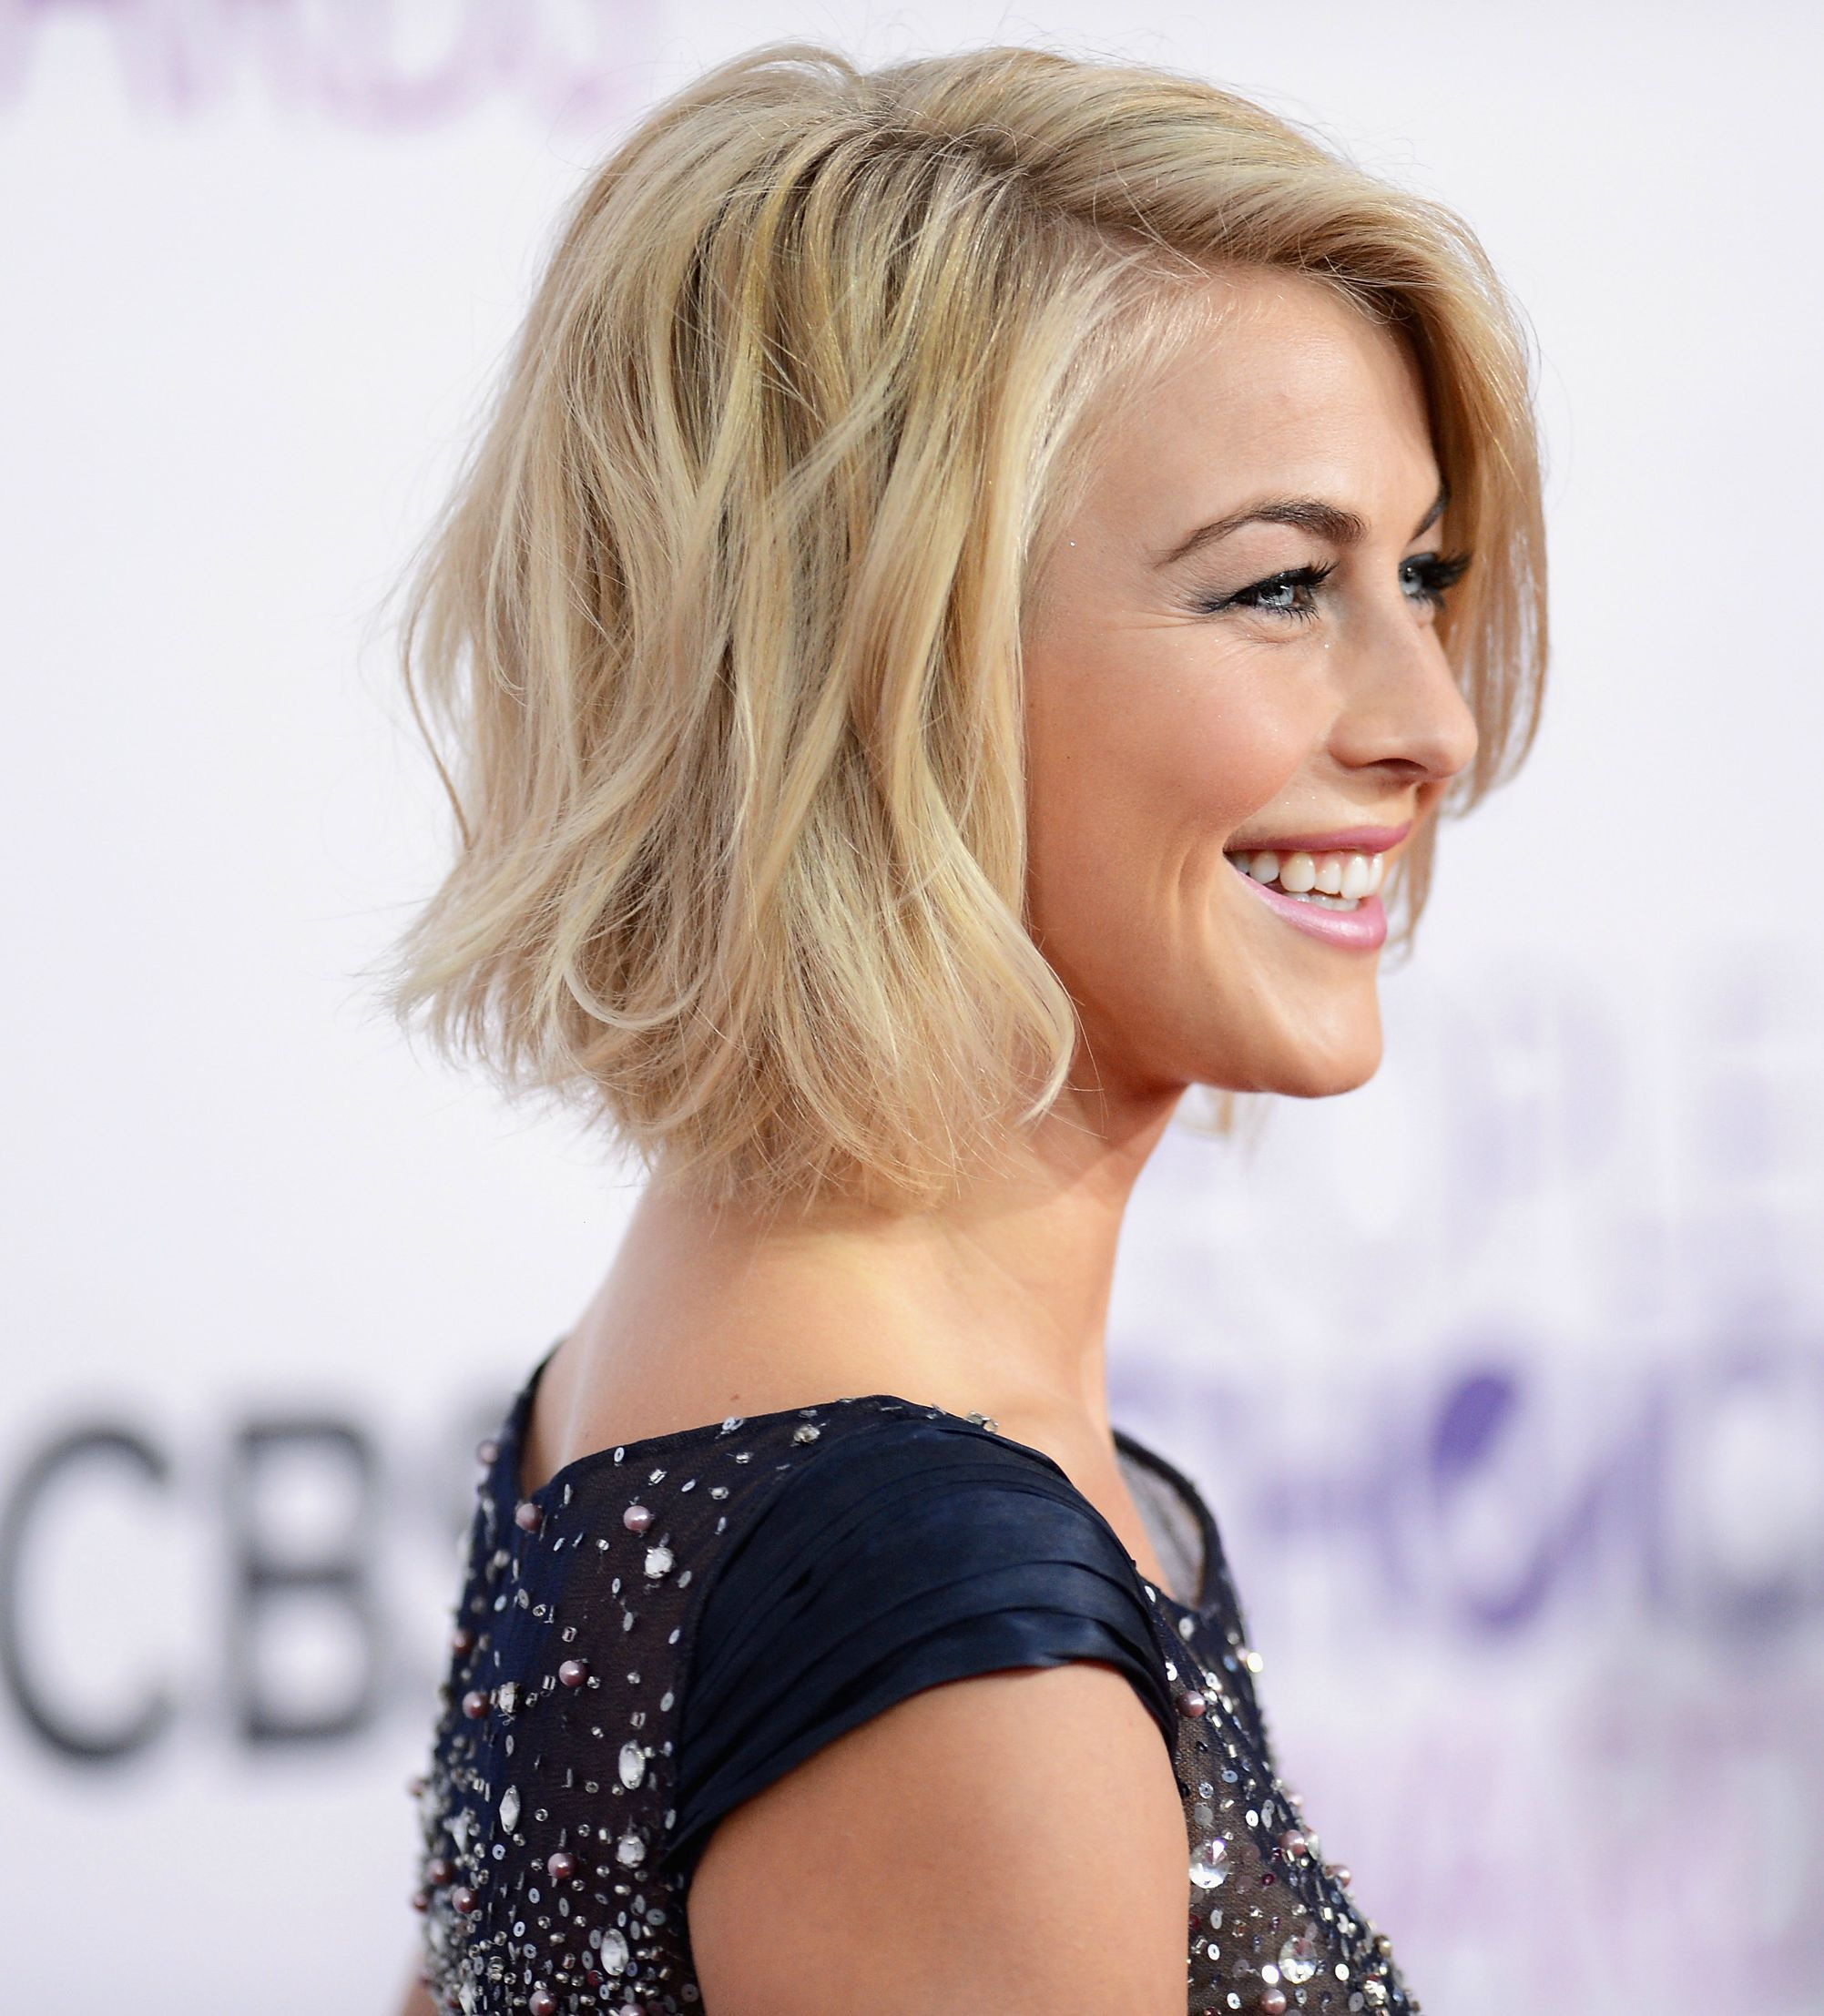 34 cute short hairstyles for women how to style short haircuts baditri Choice Image